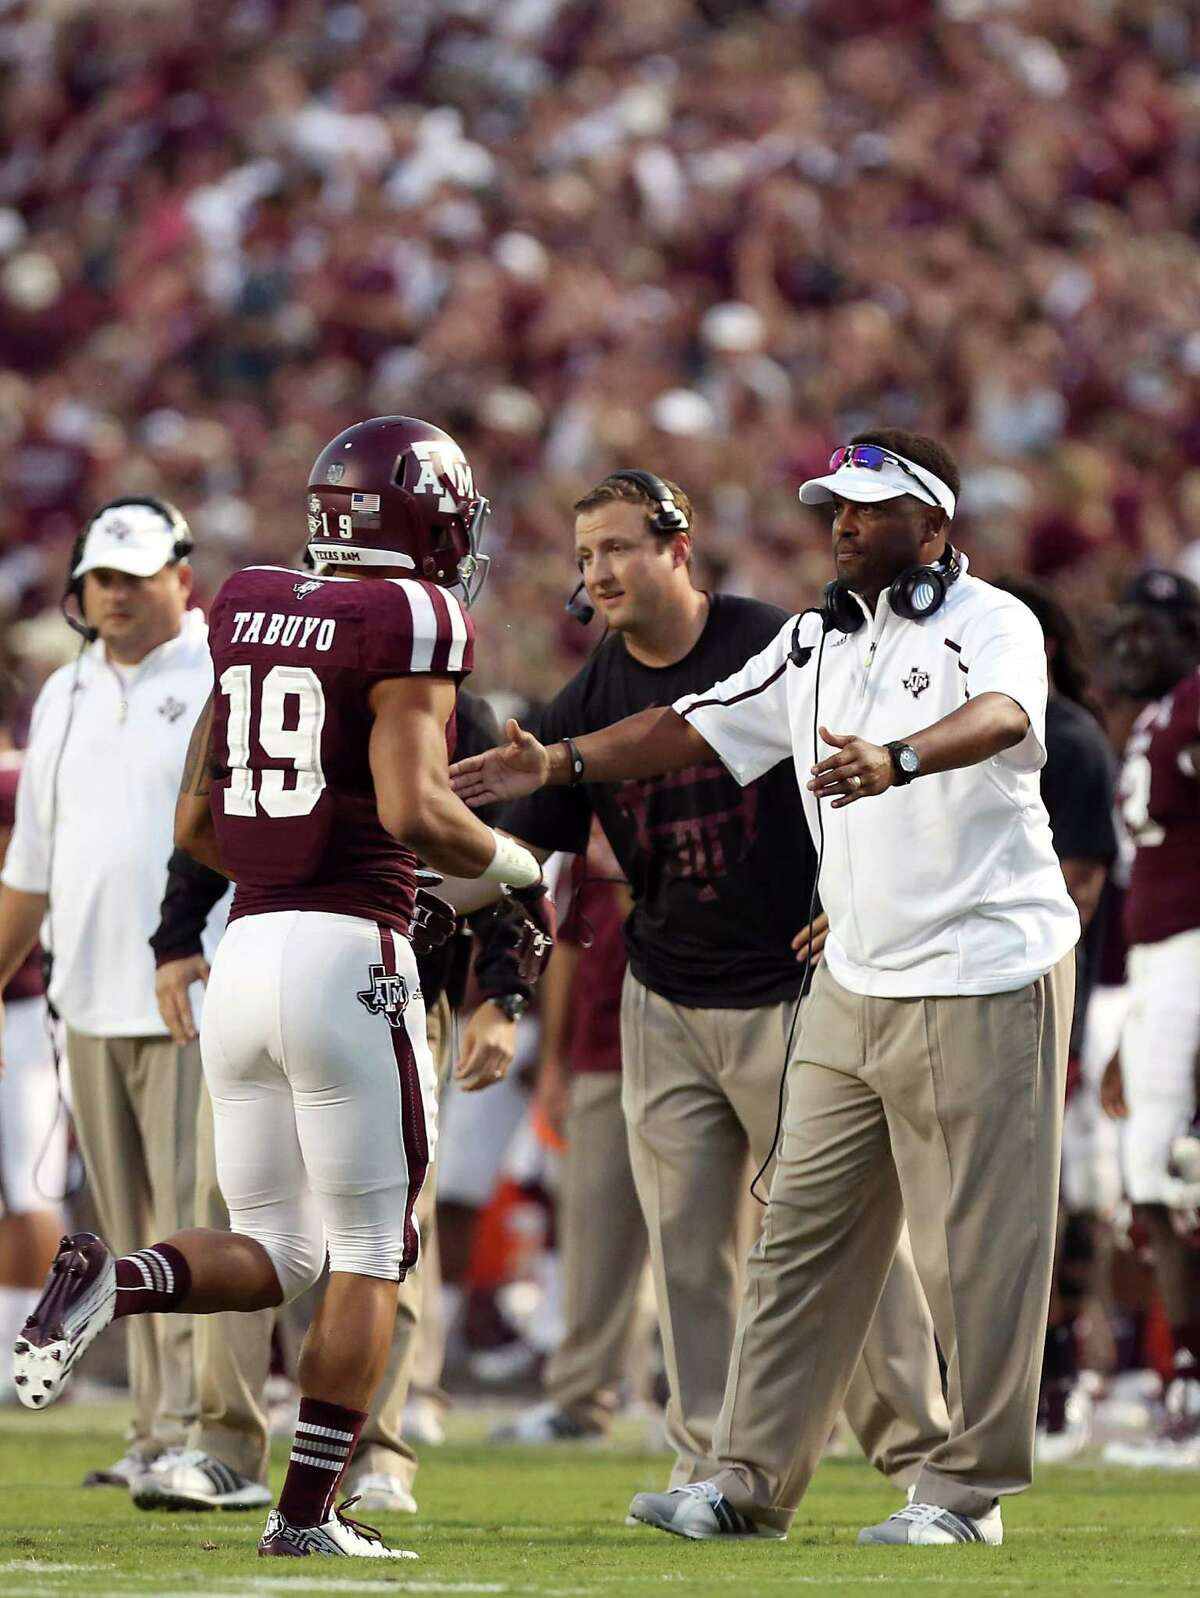 HOUSTON, TX- SEPTEMBER 21: Head coach Kevin Sumlin congratulates his team after scoring against Southern Methodist Mustangs of the Texas A&M Aggies in the second half on September 21, 2013 at Kyle Field in College Station, Texas. (Photo by Thomas B. Shea/Getty Images)